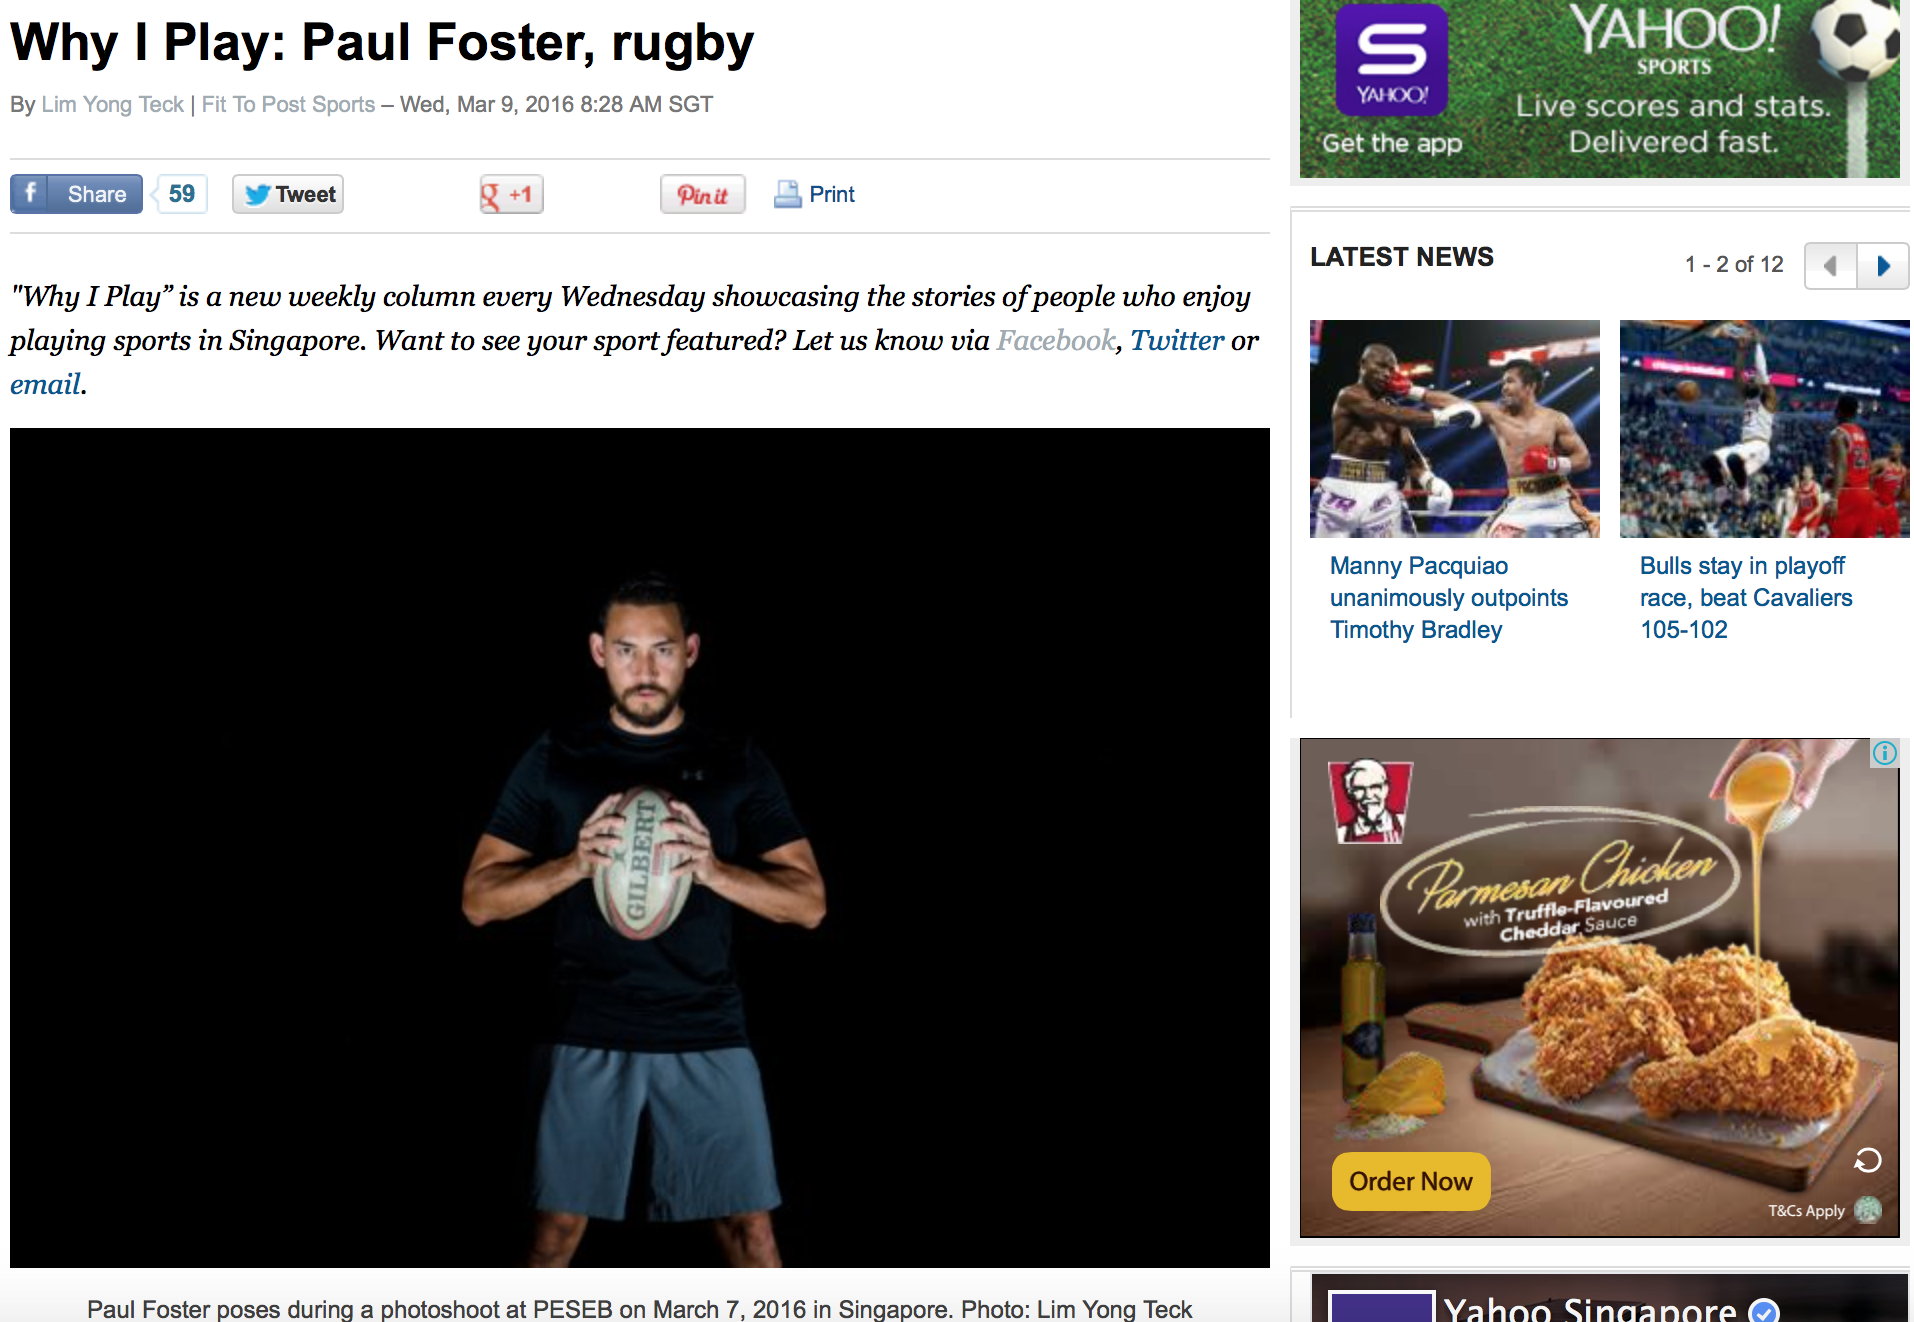 Paul Foster rugby feature for Yahoo!(www.yahoo.com)